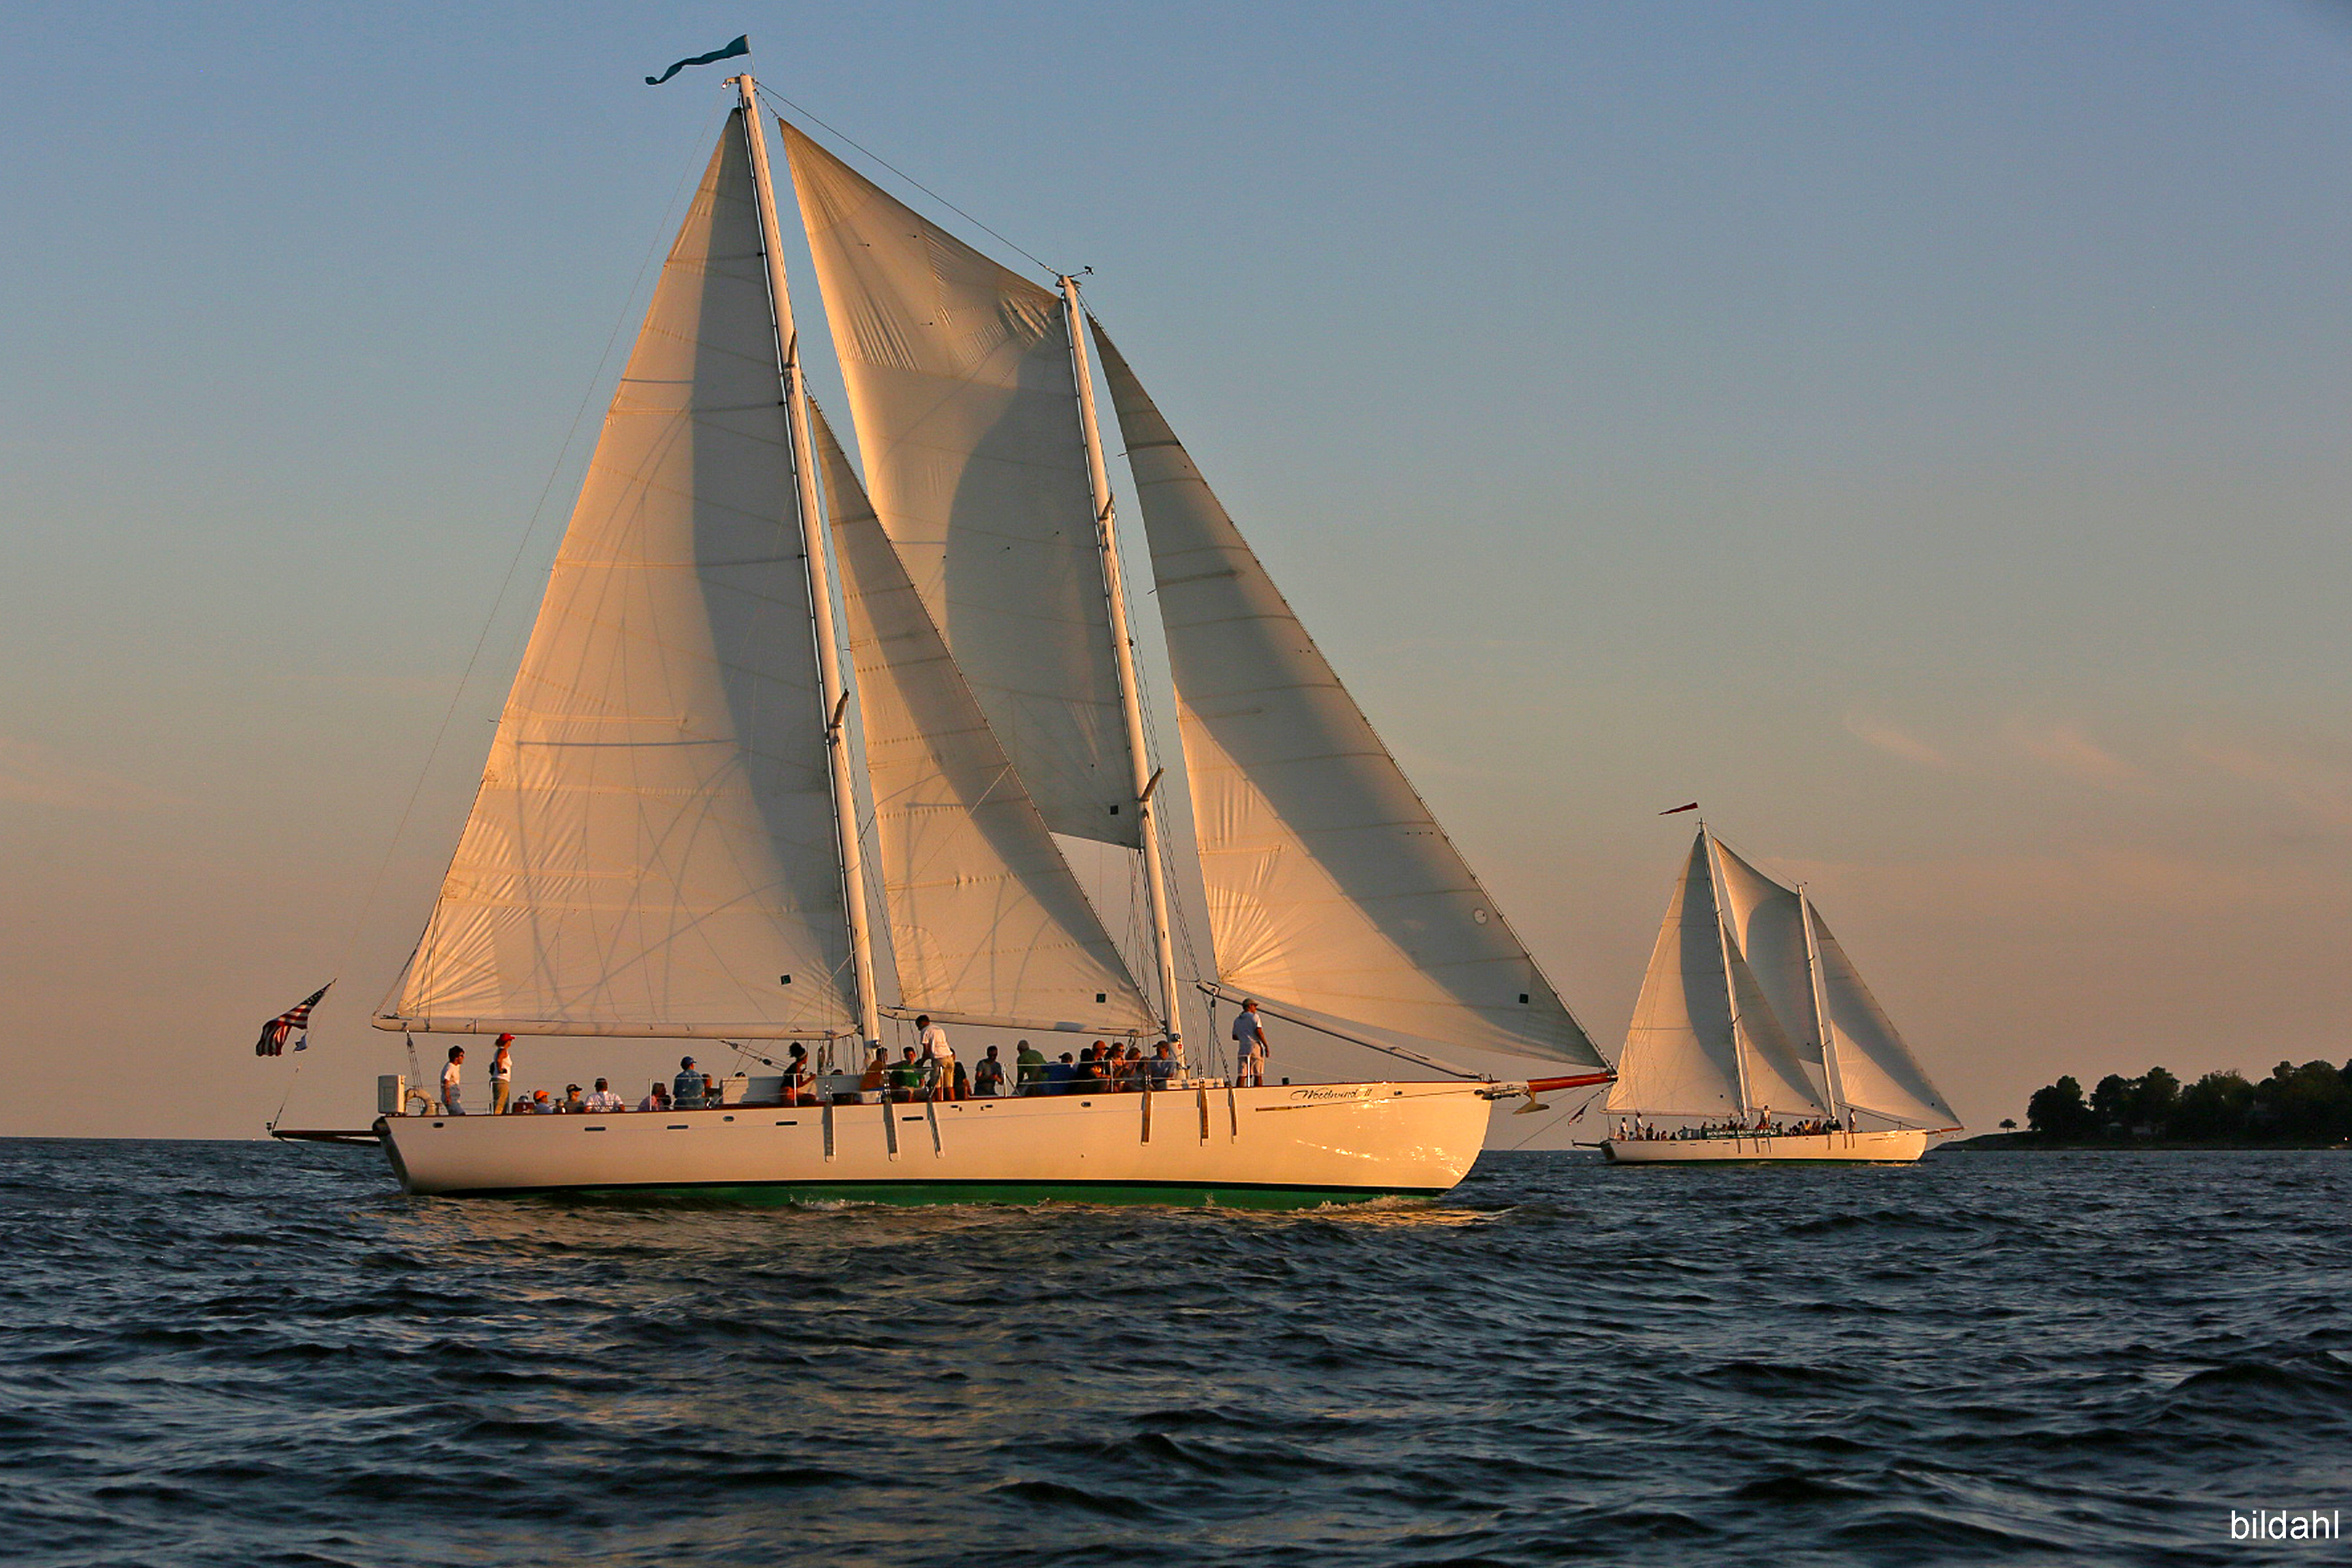 The two Woodwinds sailing side by side